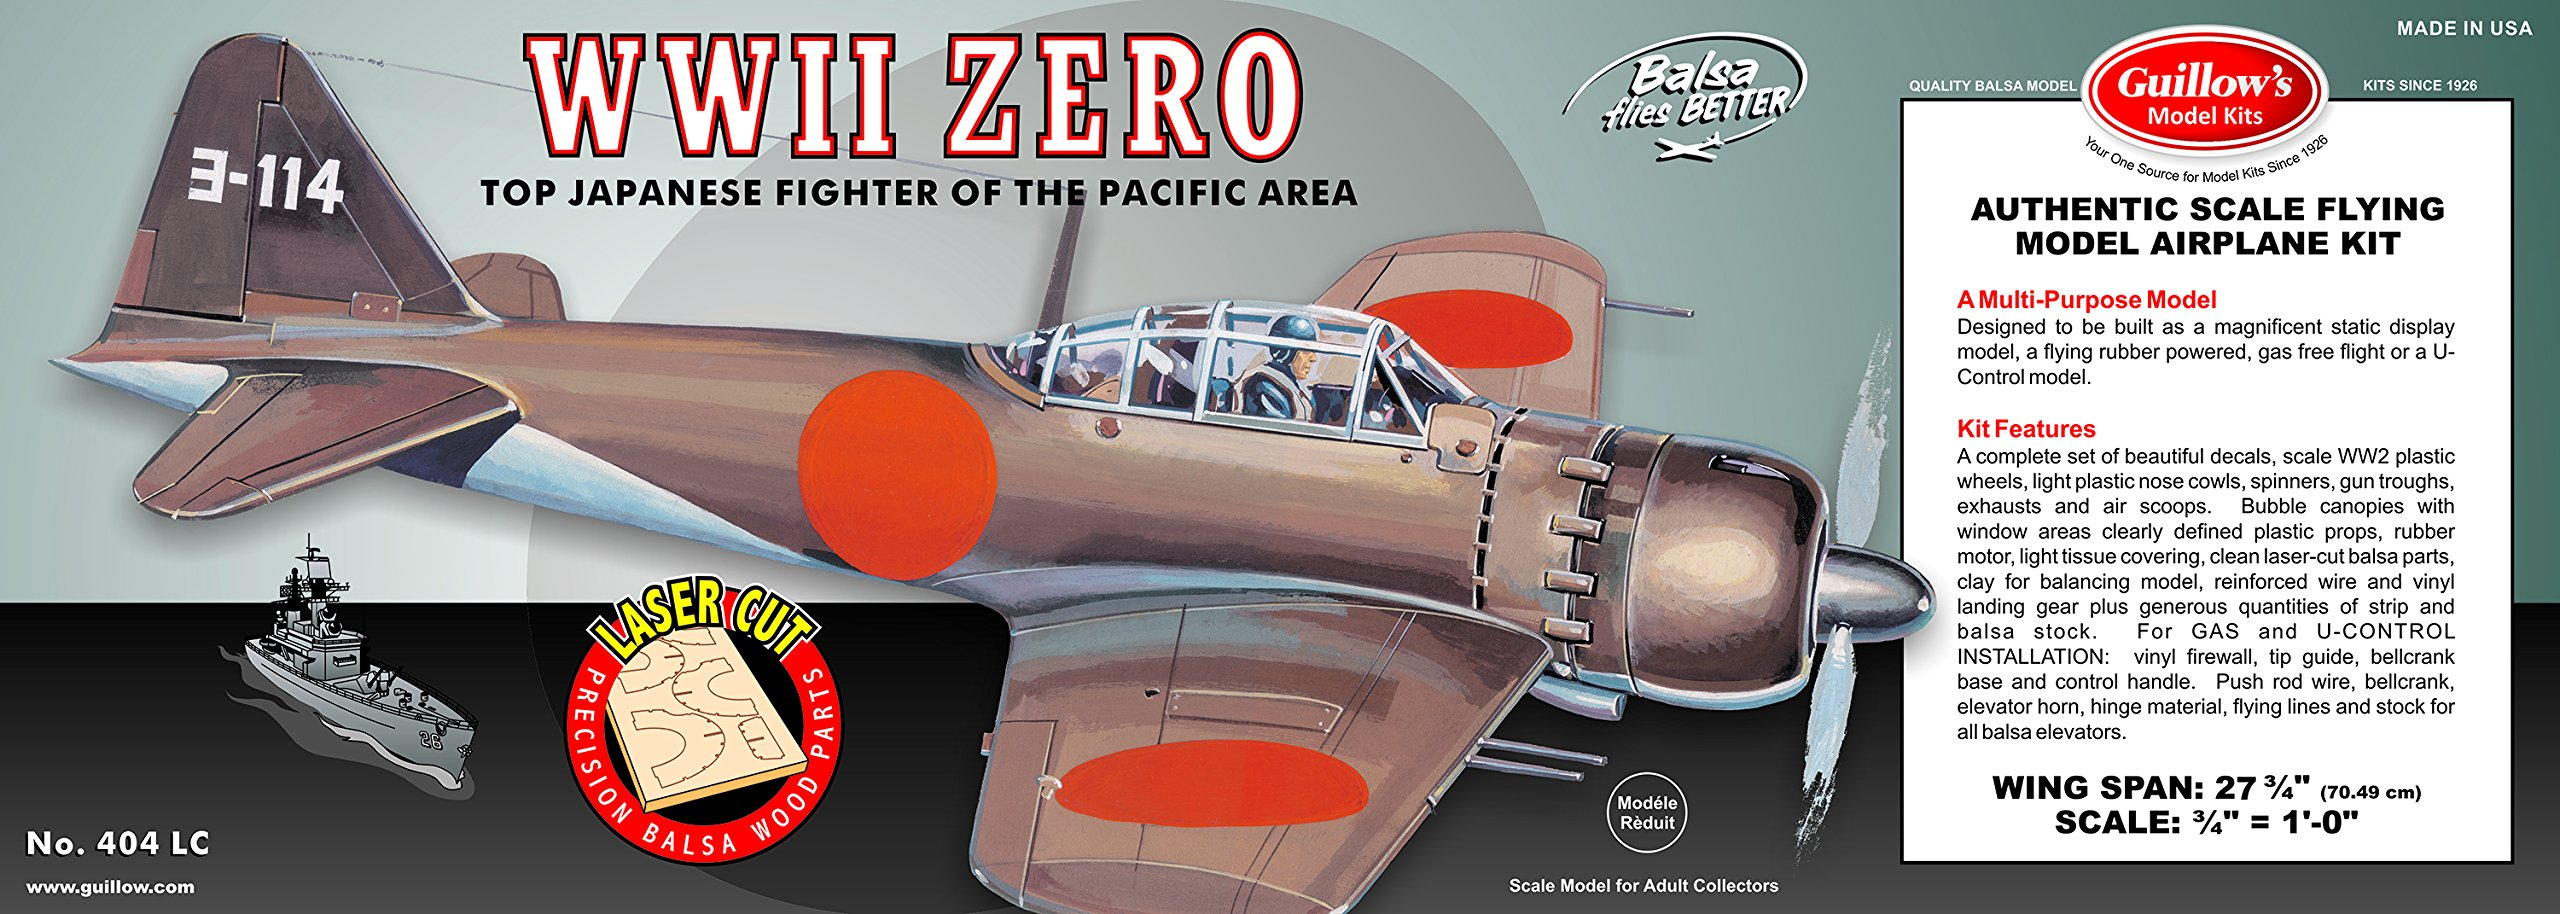 Guillow's WWII Zero Laser Cut Model Kit by Guillow (Image #1)